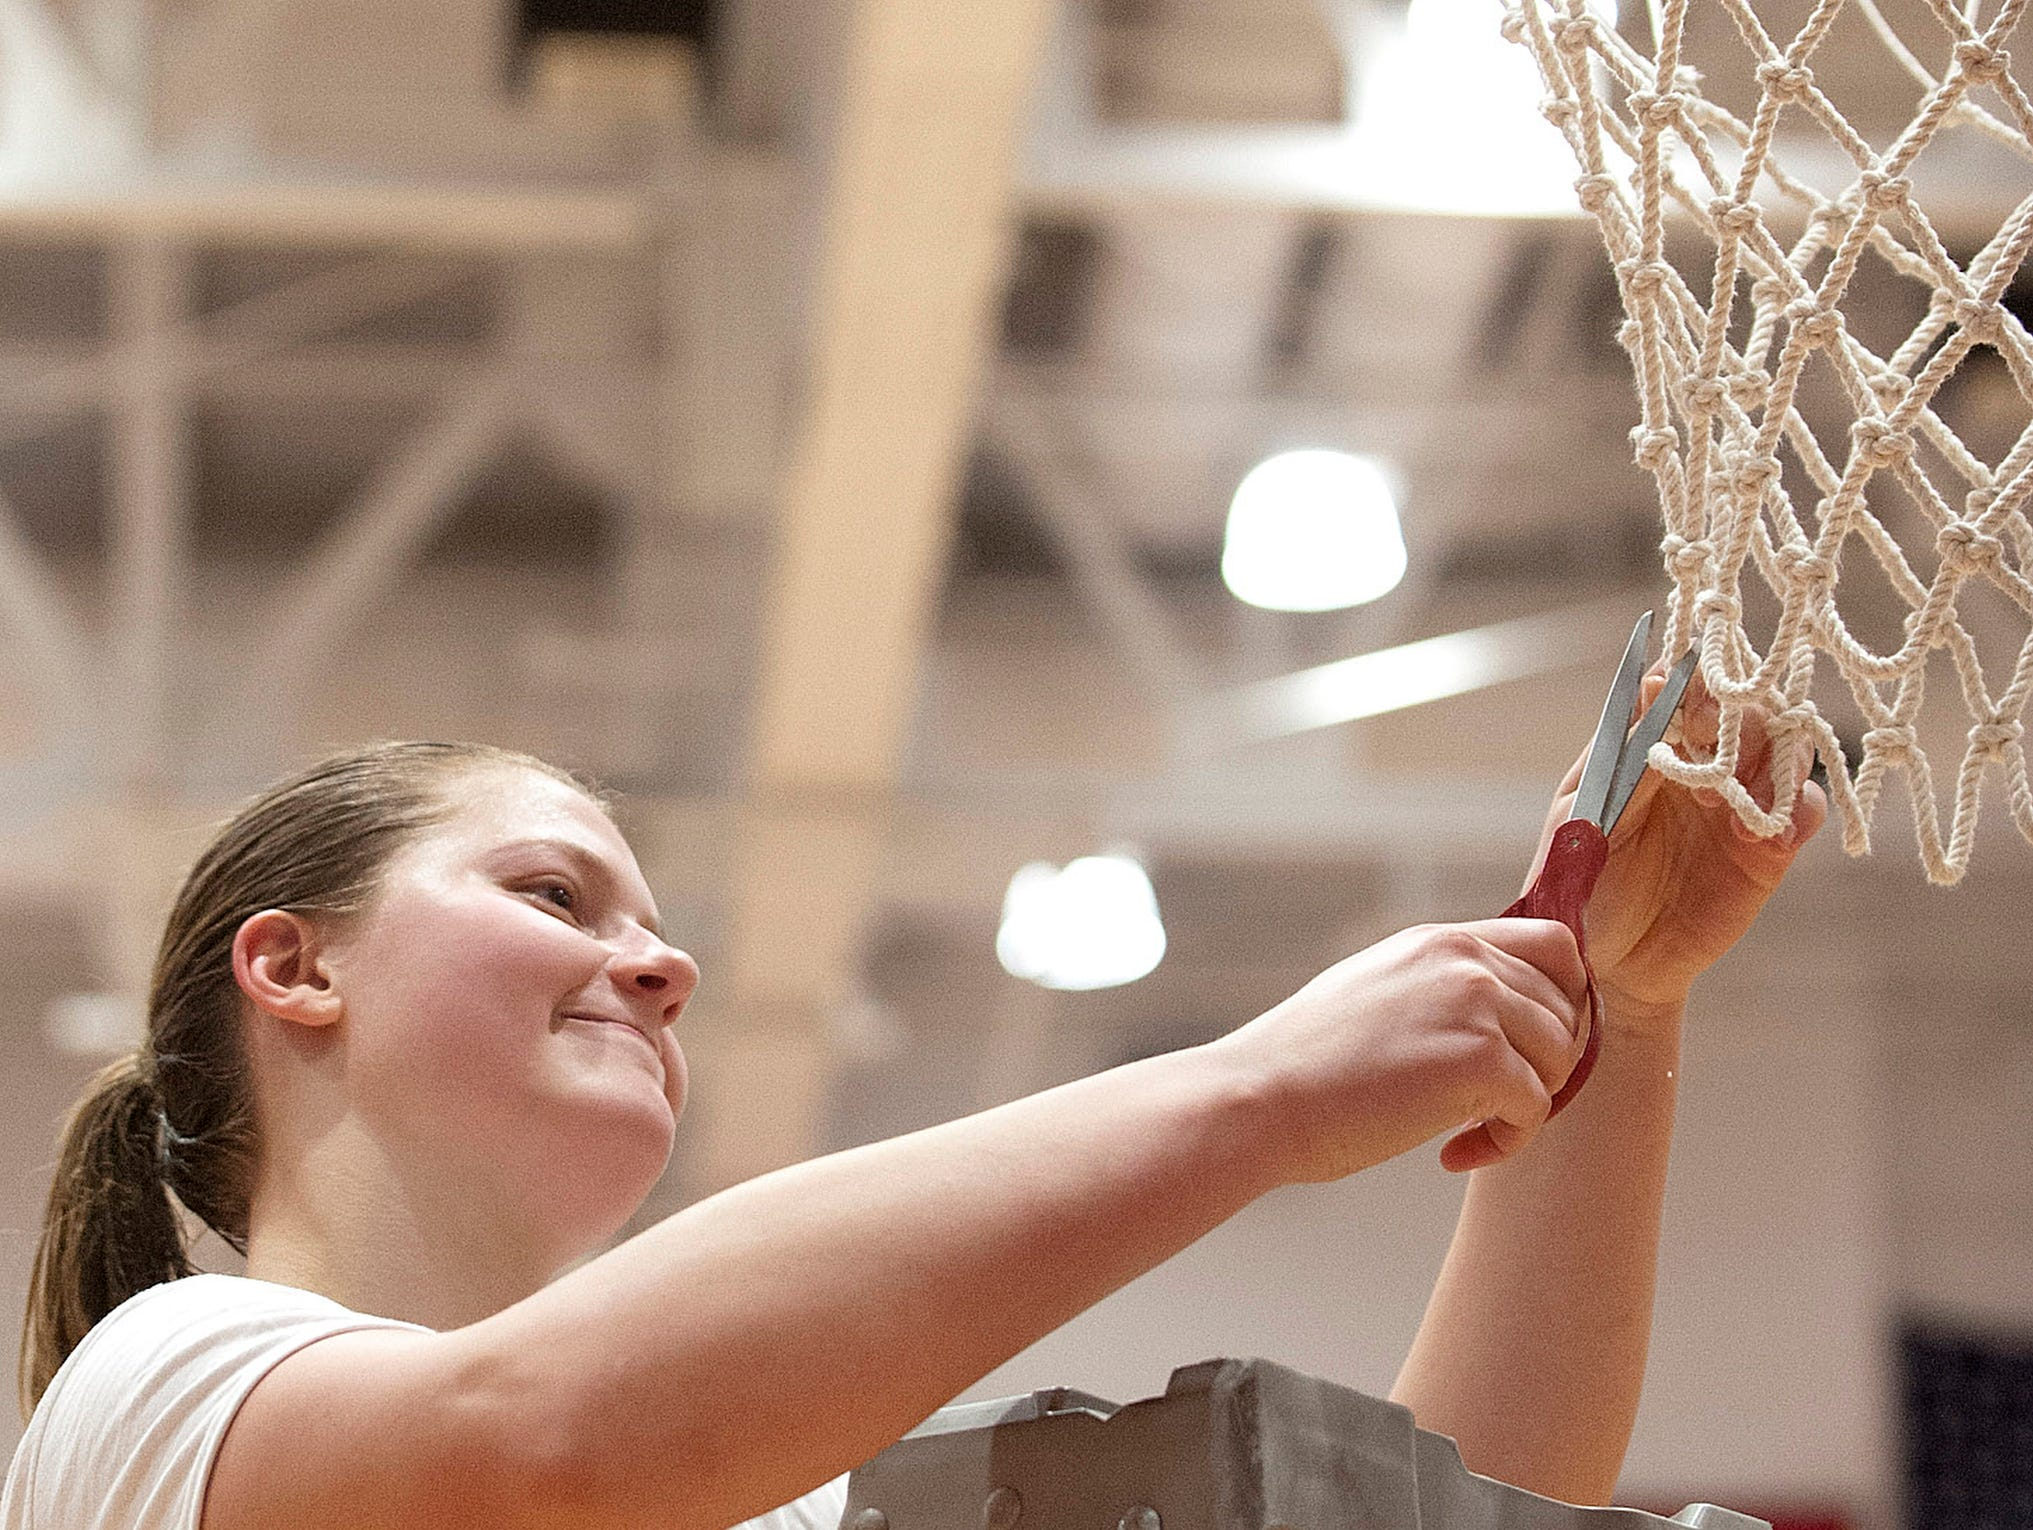 Bedford North Lawrence forward Jorie Allen cuts down the net after her team defeated Jennings County in the IHSAA New Albany Sectional Championship 56-34. Allen scored a team-high 17 points in the contest.05 February 2019